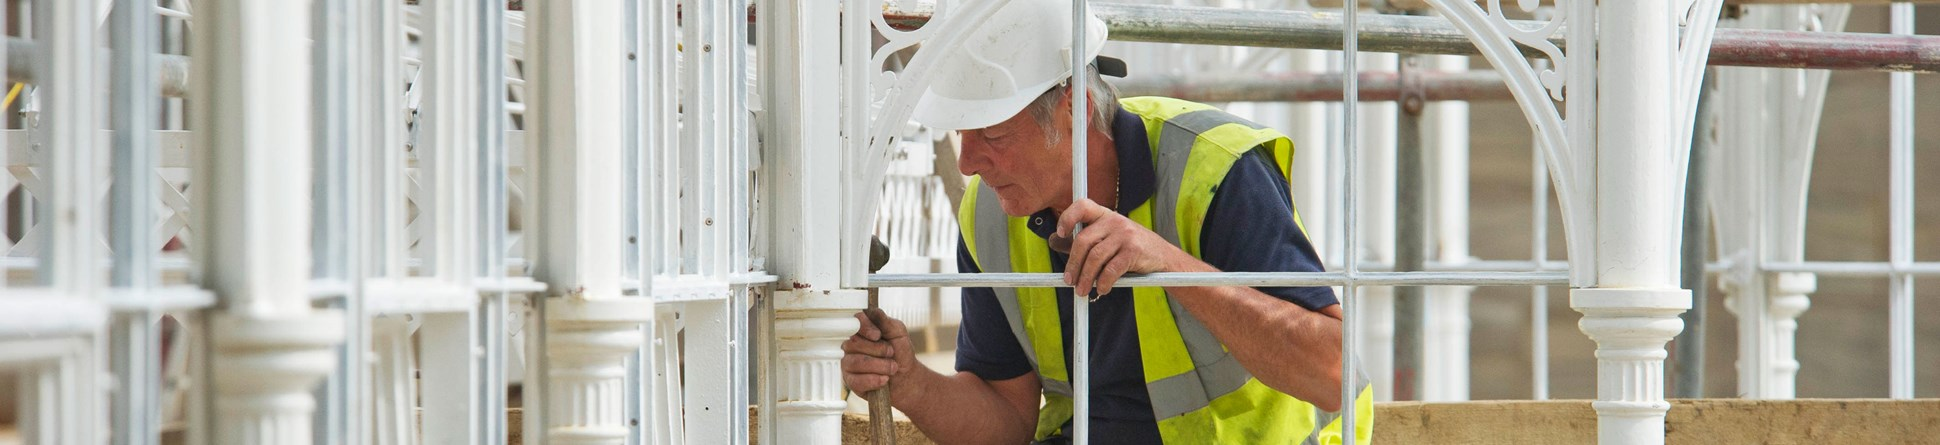 A man wearing hard hat and high vis jacket sits on scaffolding while working on ornate white ironwork of Wentworth Castle conservatory.